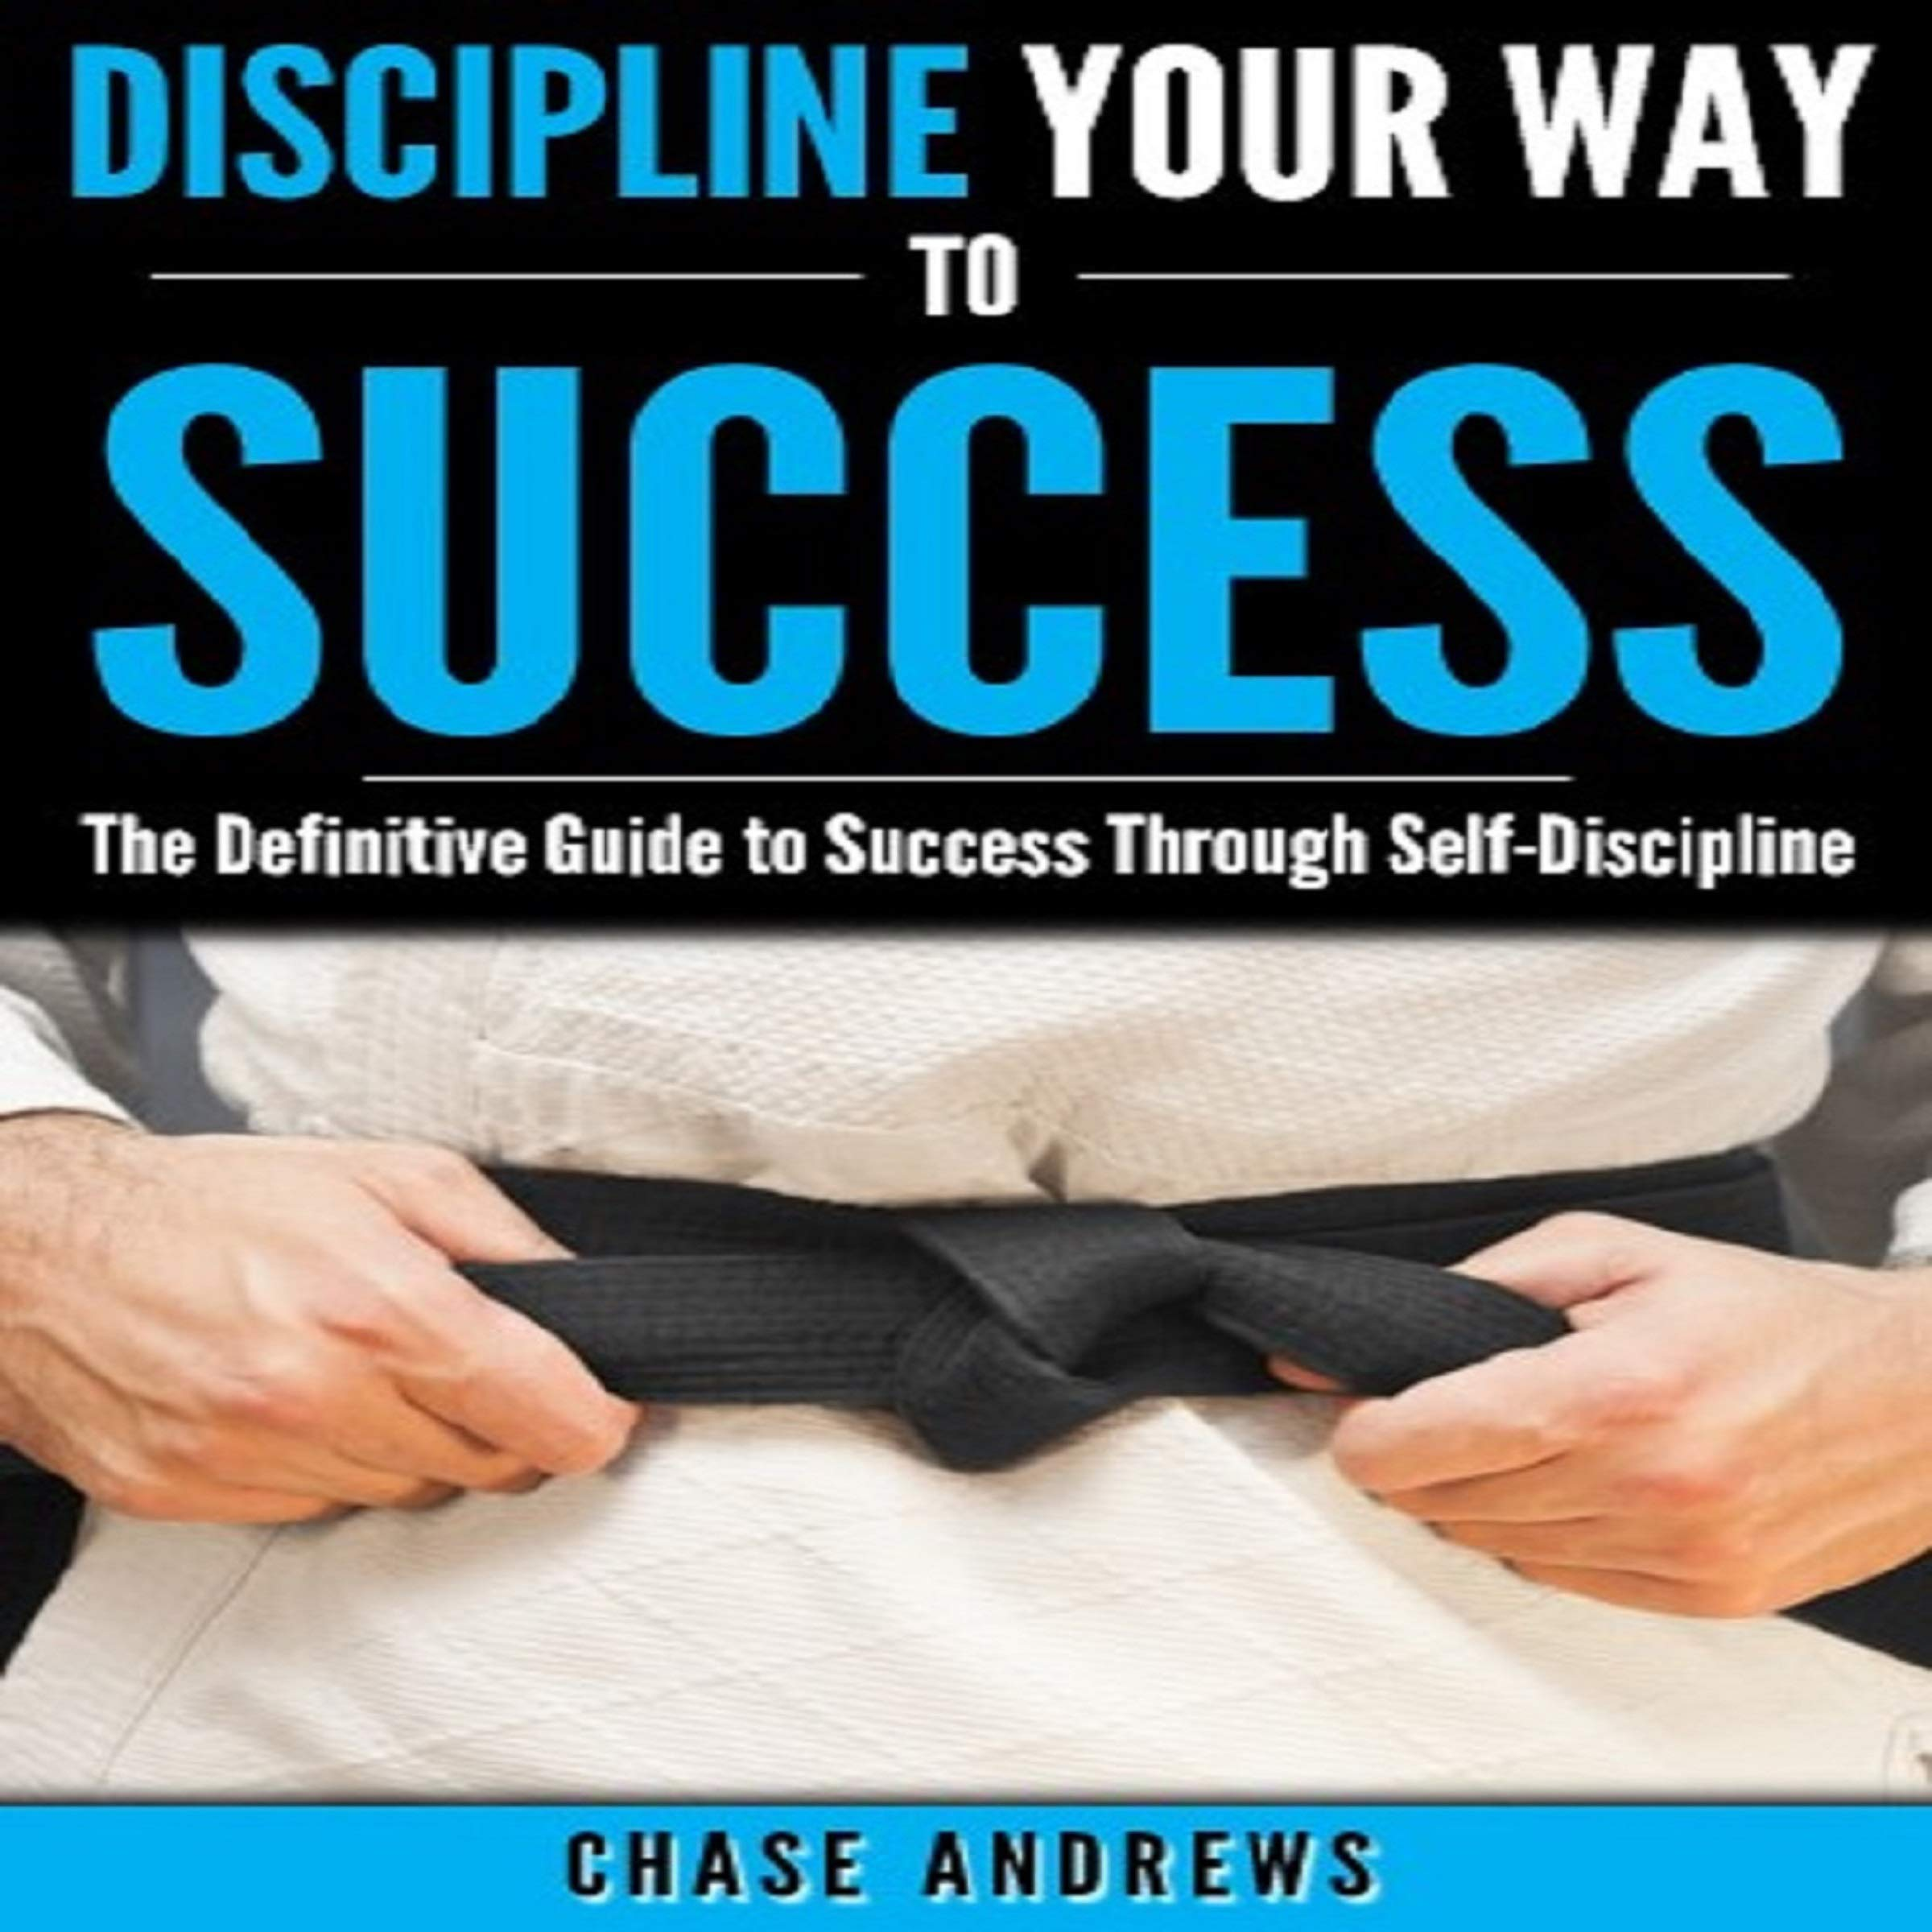 Discipline Your Way to Success: The Definitive Guide to Success Through Self-Discipline